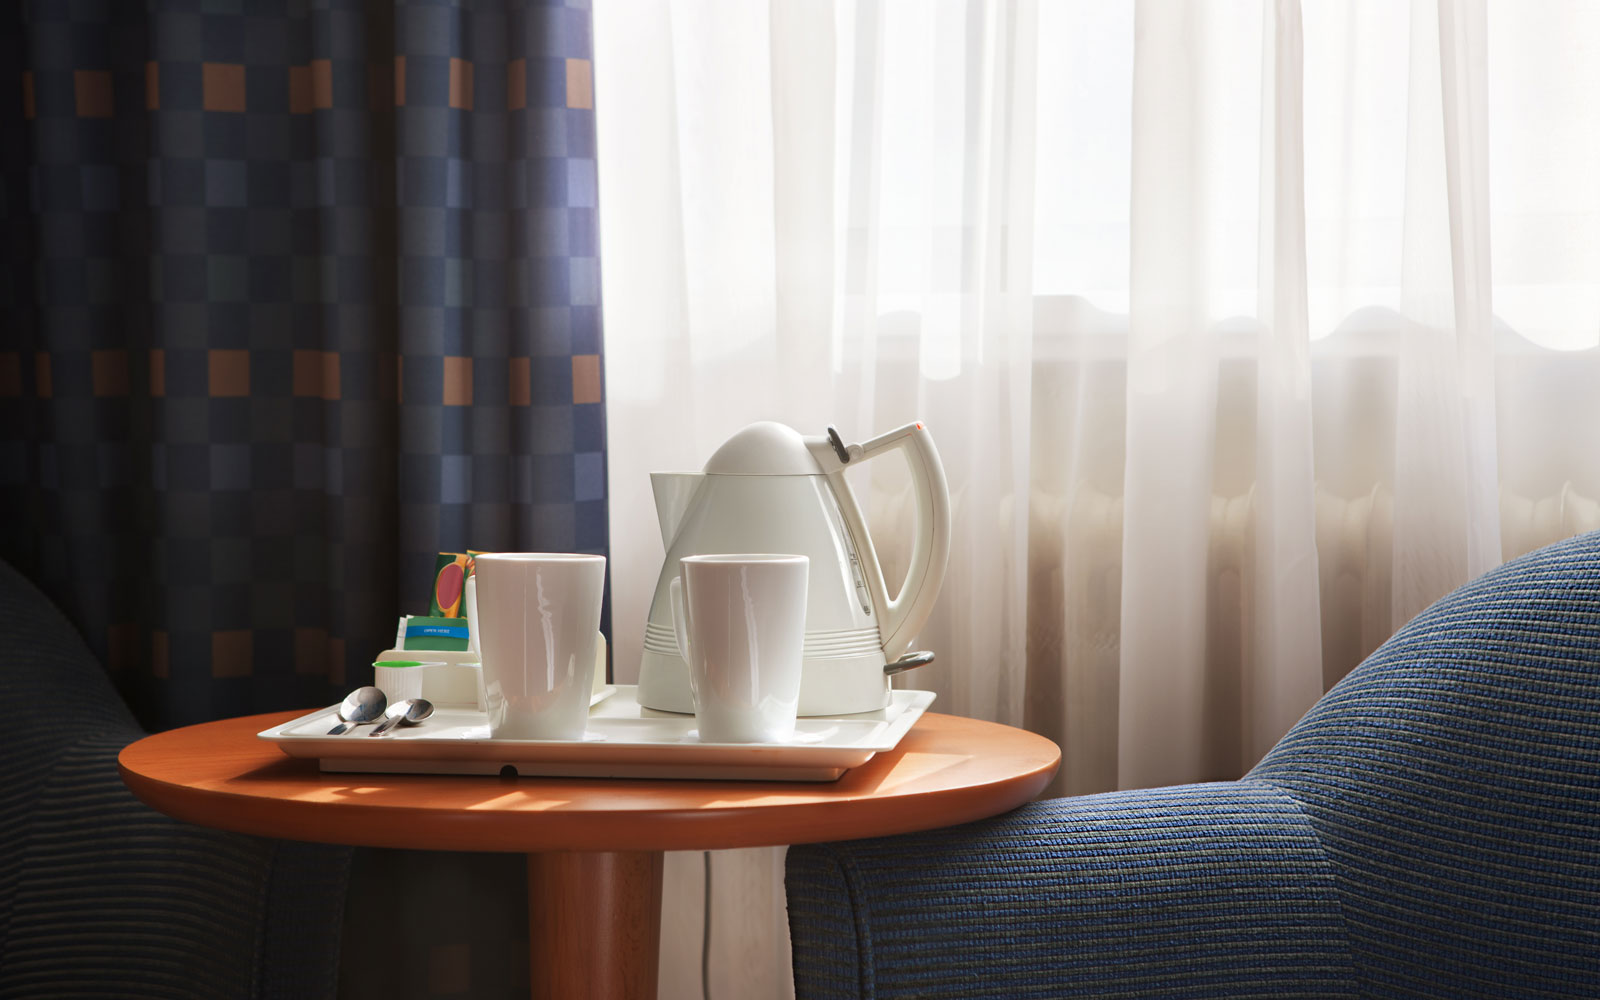 You're Going to Want to Rethink Using the Kettle in Your Hotel Room